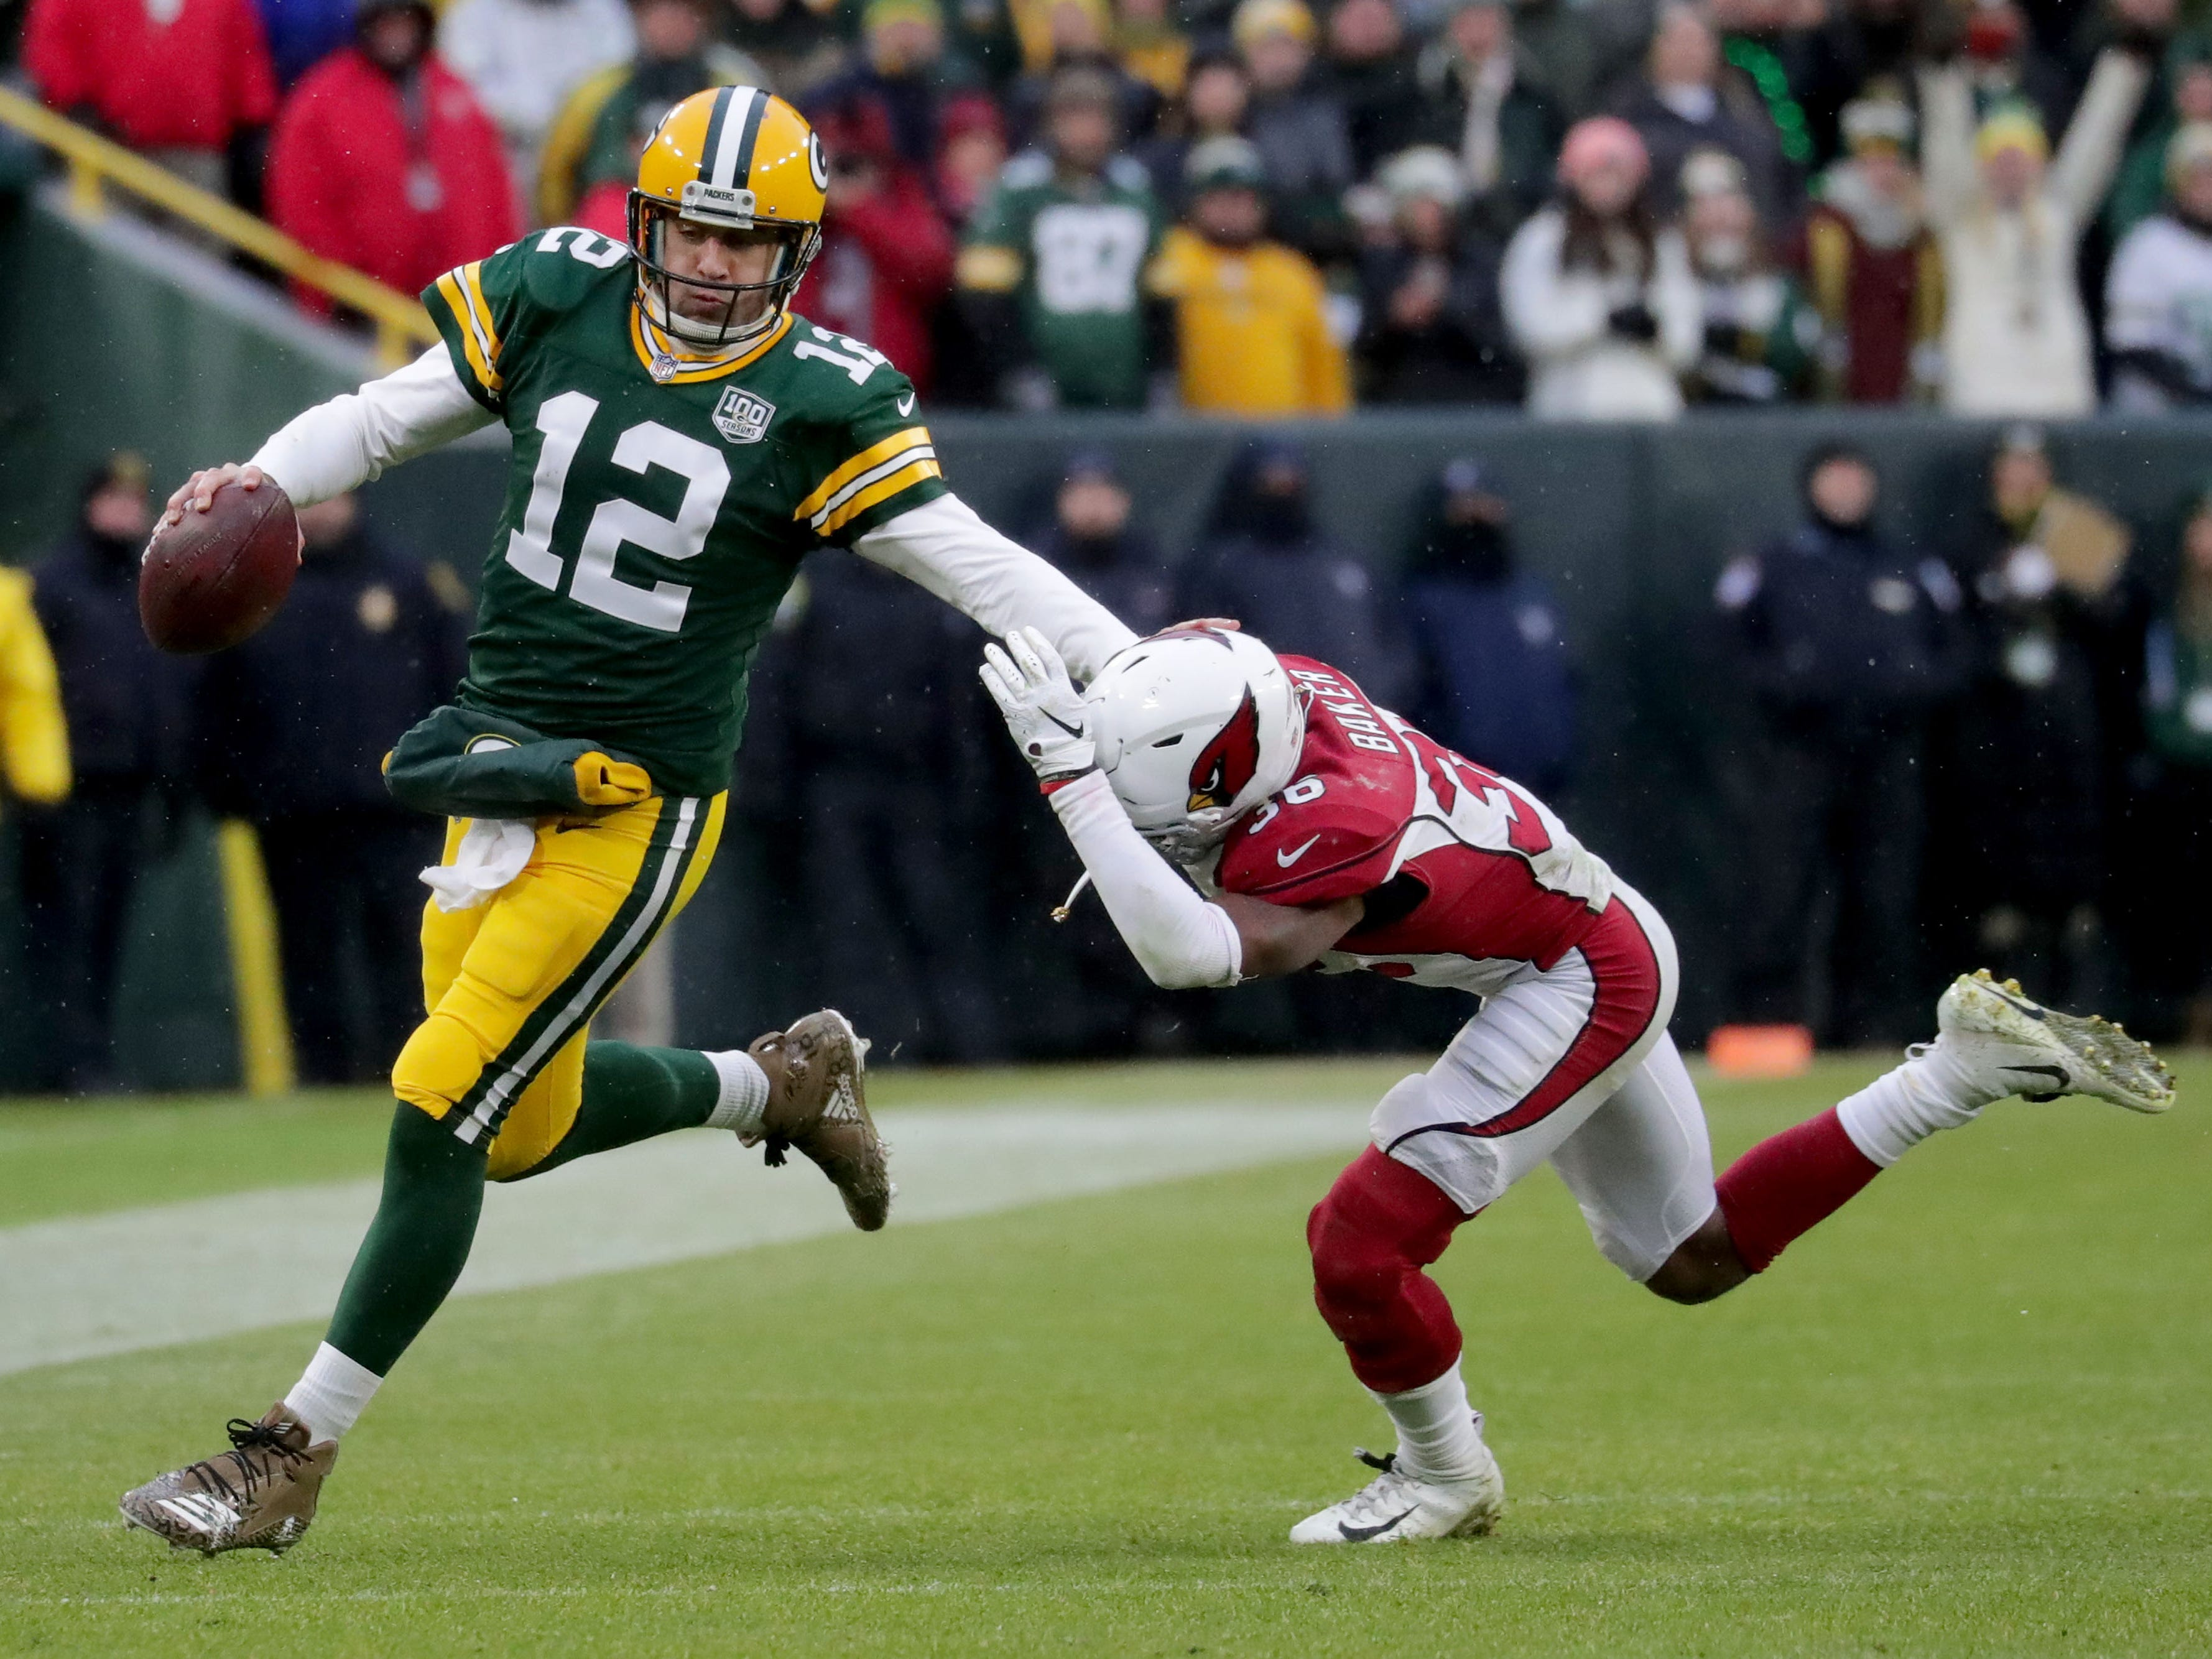 Green Bay Packers quarterback Aaron Rodgers (12) stiff arms Arizona Cardinals strong safety Budda Baker (36) during the 4th quarter of Green Bay Packers game 20-17 loss against the Arizona Cardinals on Sunday, December 2, 2018 at Lambeau Field in Green Bay, Wis. Mike De Sisti / USA TODAY NETWORK-Wis